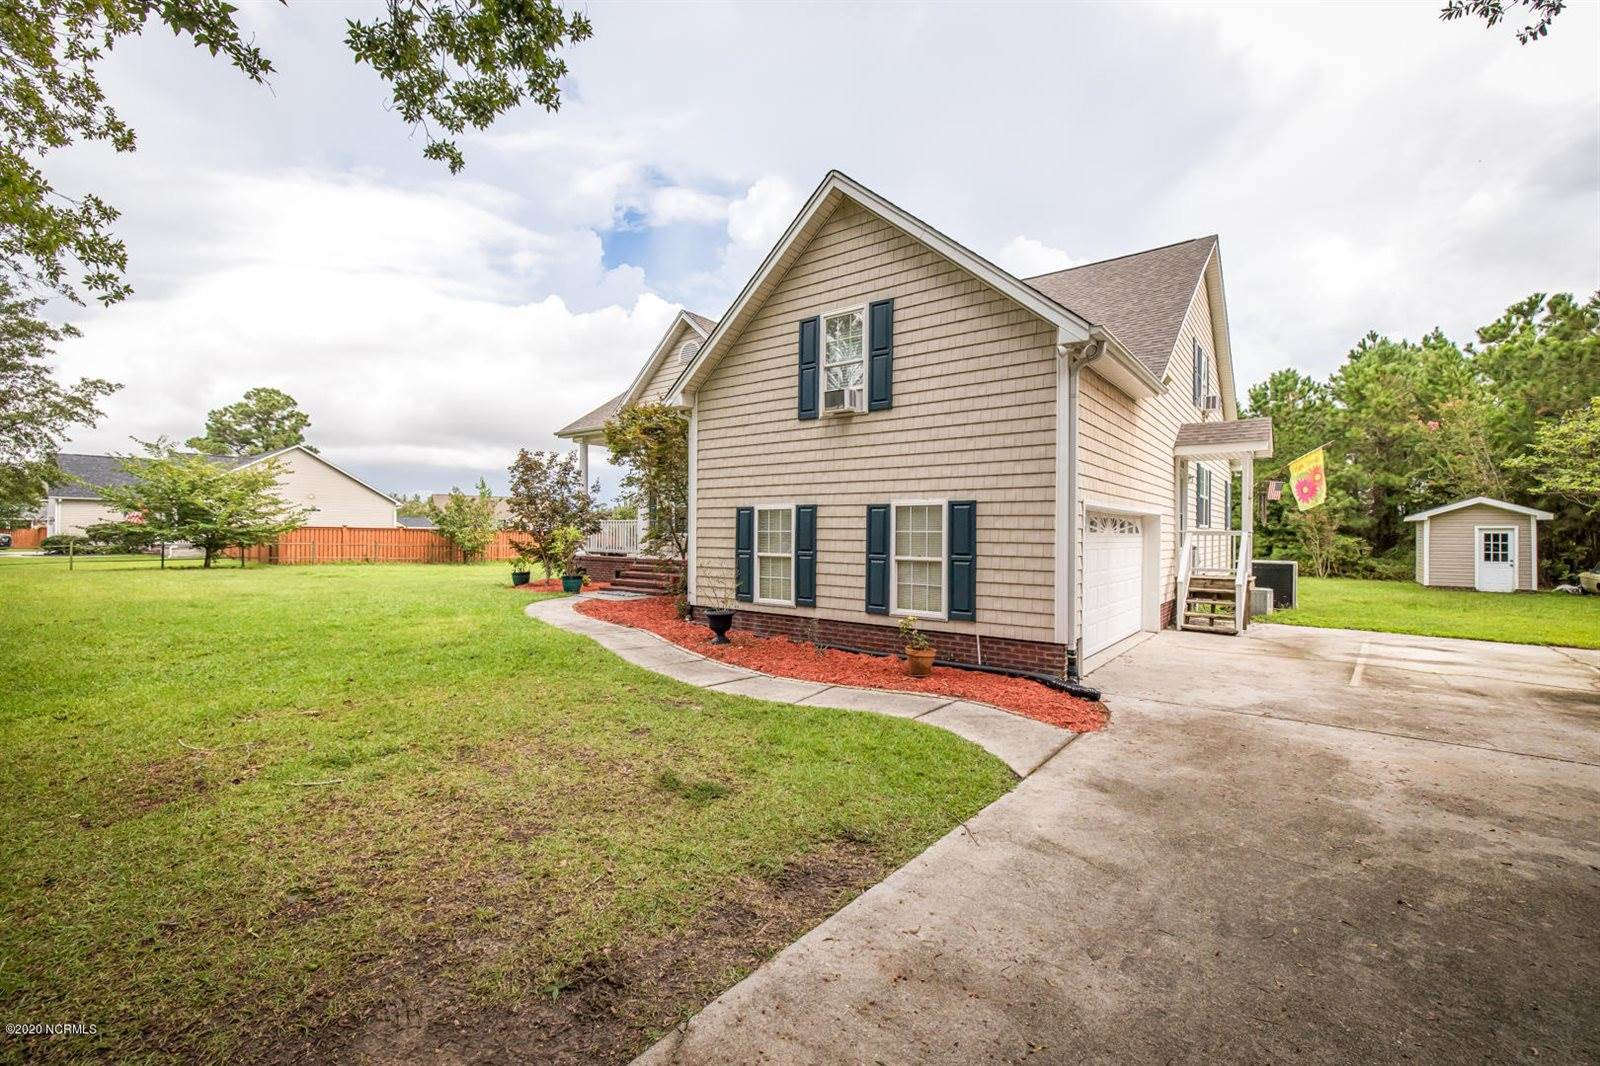 85 Alton D Rivenbark Road, Hampstead, NC 28443